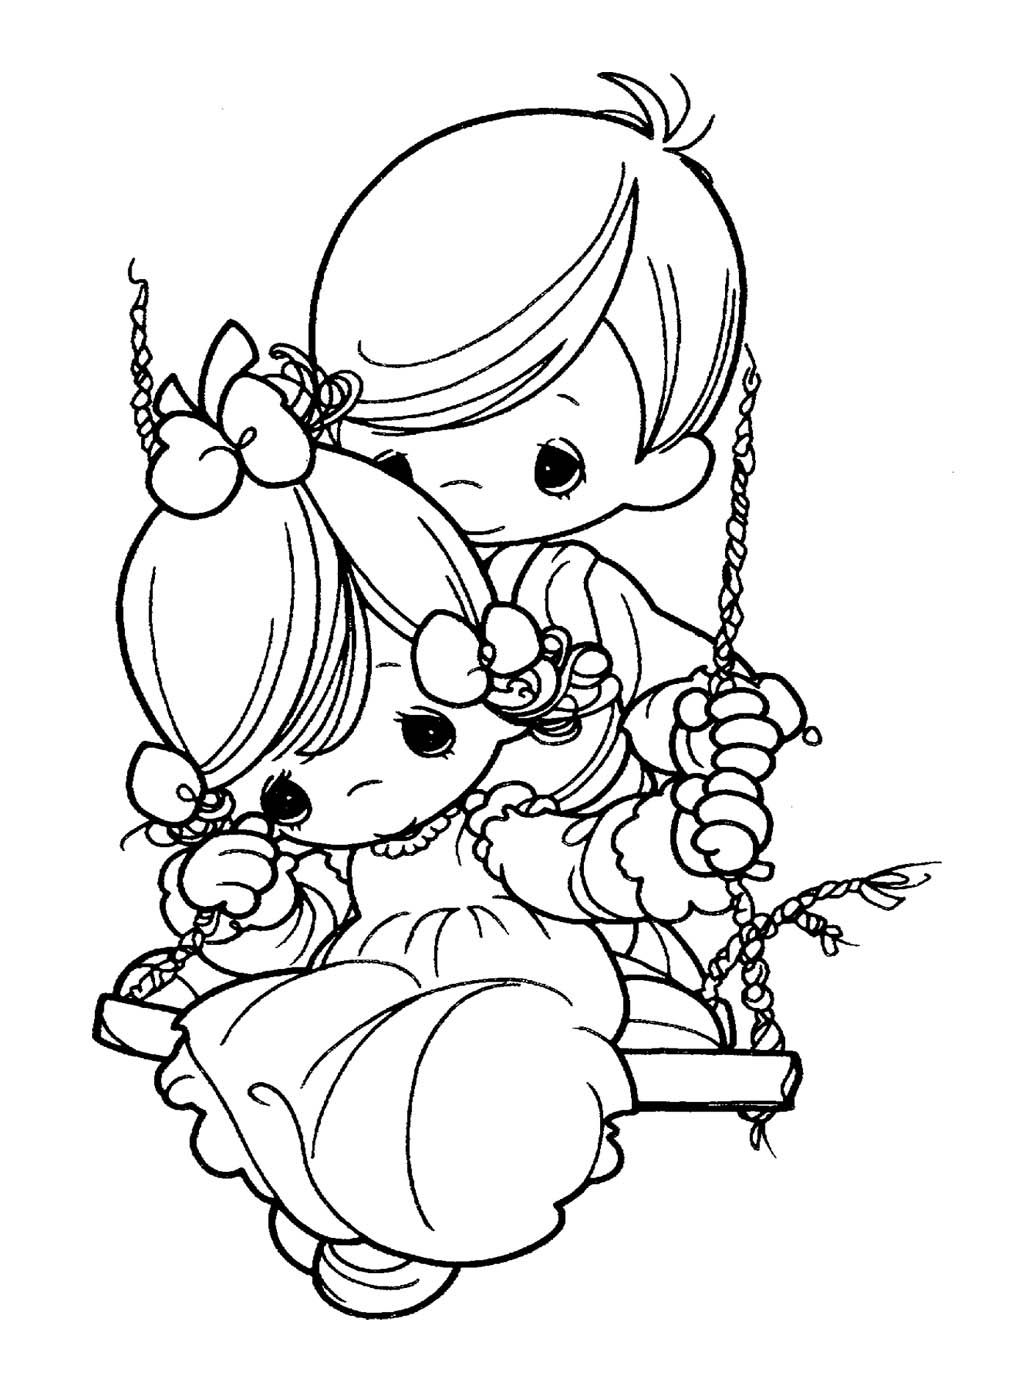 Precious Moments Always With Coloring Pages For Kids | Kids Coloring ...